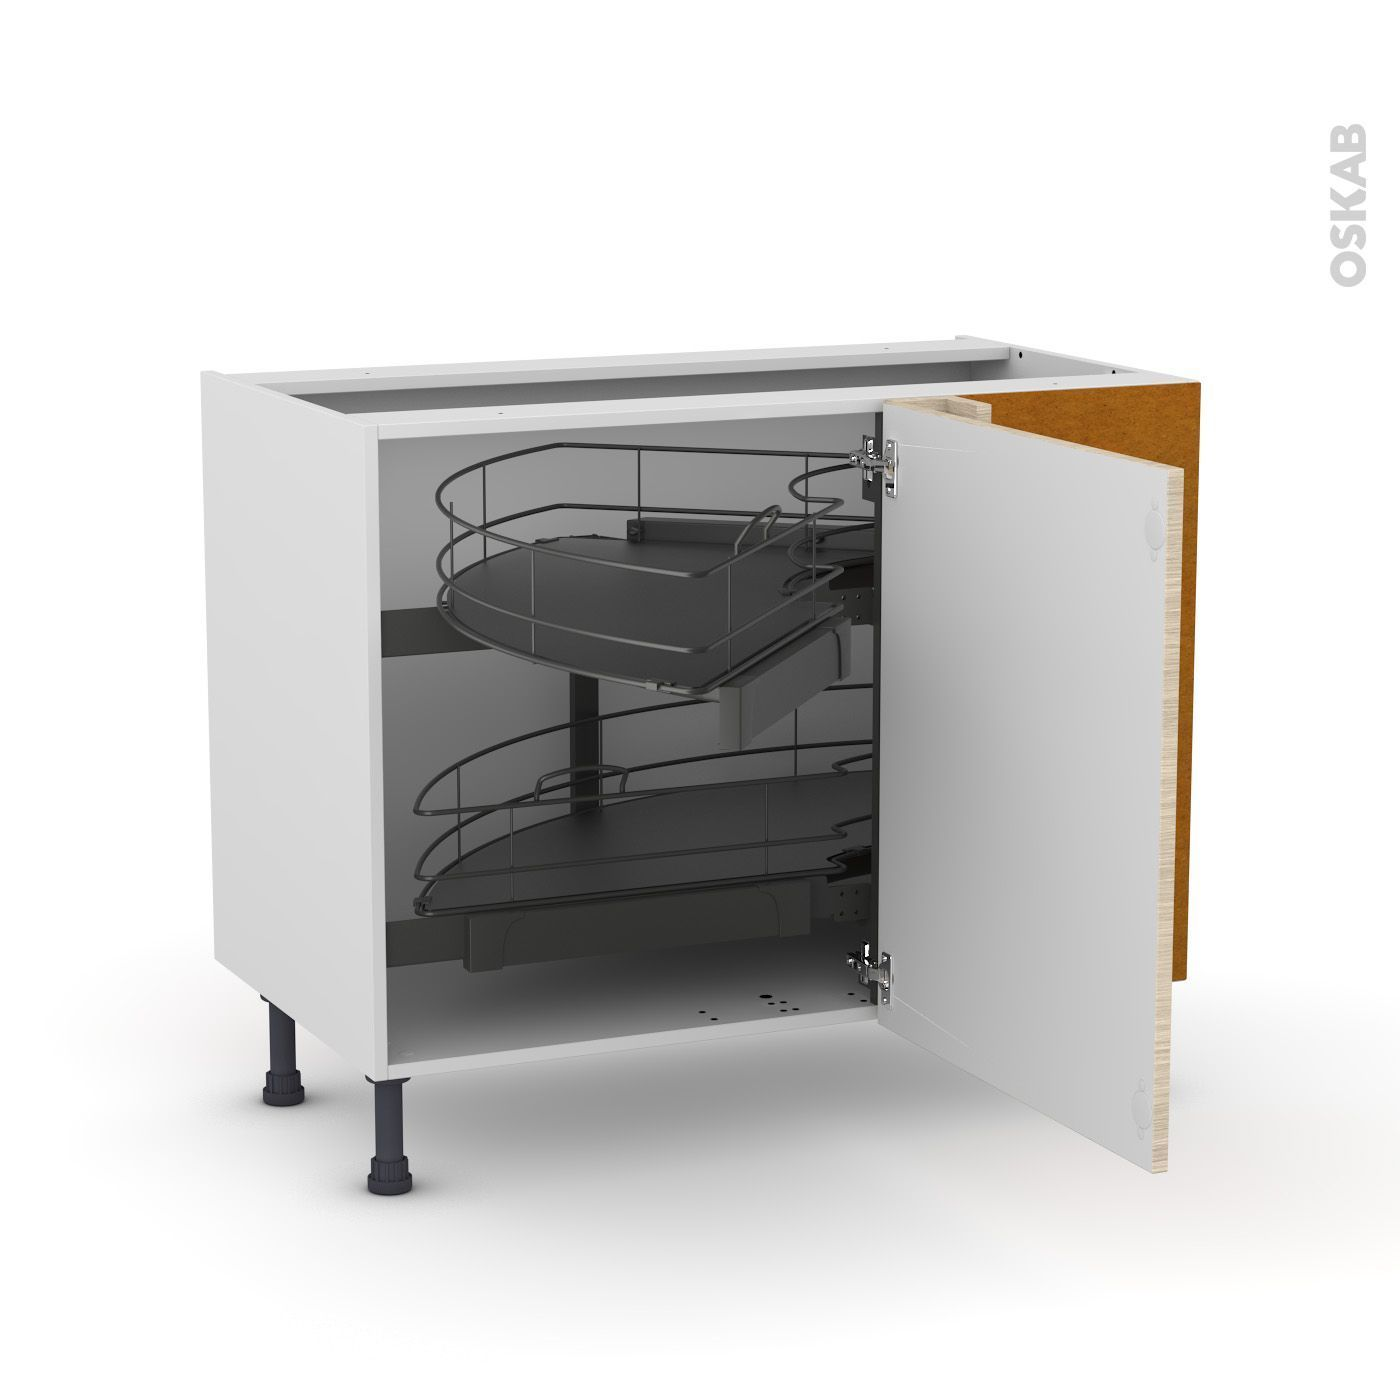 Meuble De Cuisine Angle Bas Stilo Noyer Blanchi Demi Lune Coulissant Tirant Droit 1 Porte L60 Cm Mobile L100 X H7 In 2020 Small Kitchen Storage Locker Storage Kitchen Remodel